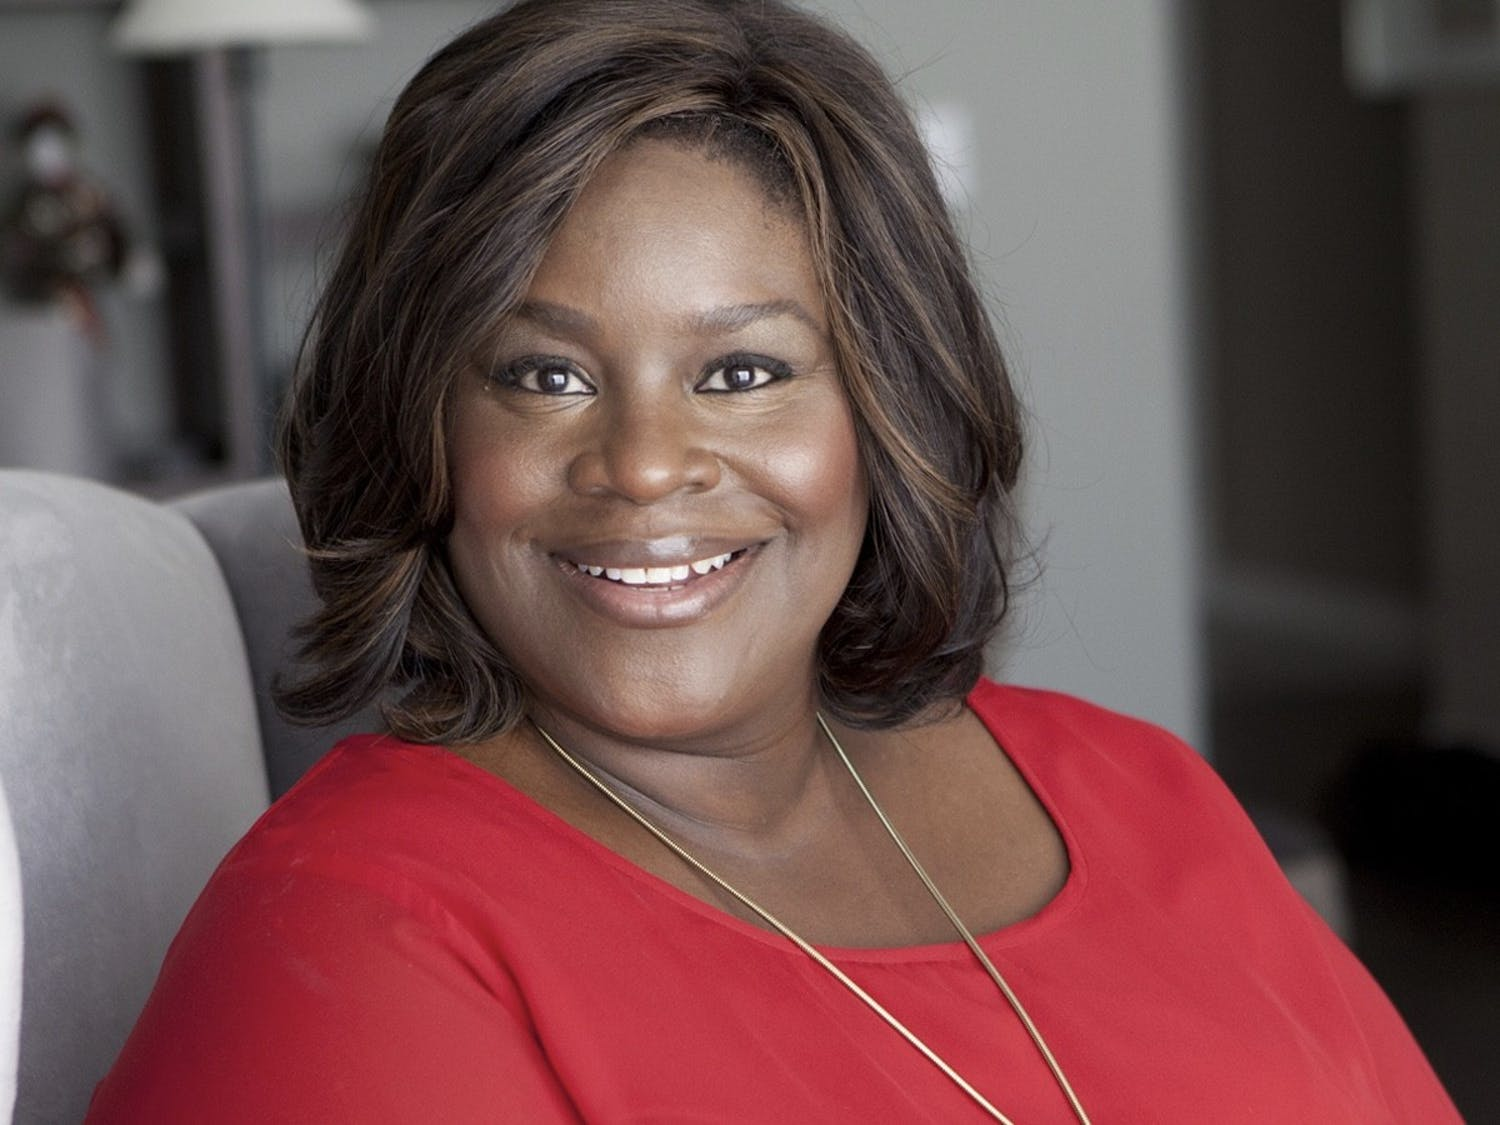 """Retta, best known for her role as Donna Meagle on """"Parks and Recreation,"""" graduated from Duke in 1992."""